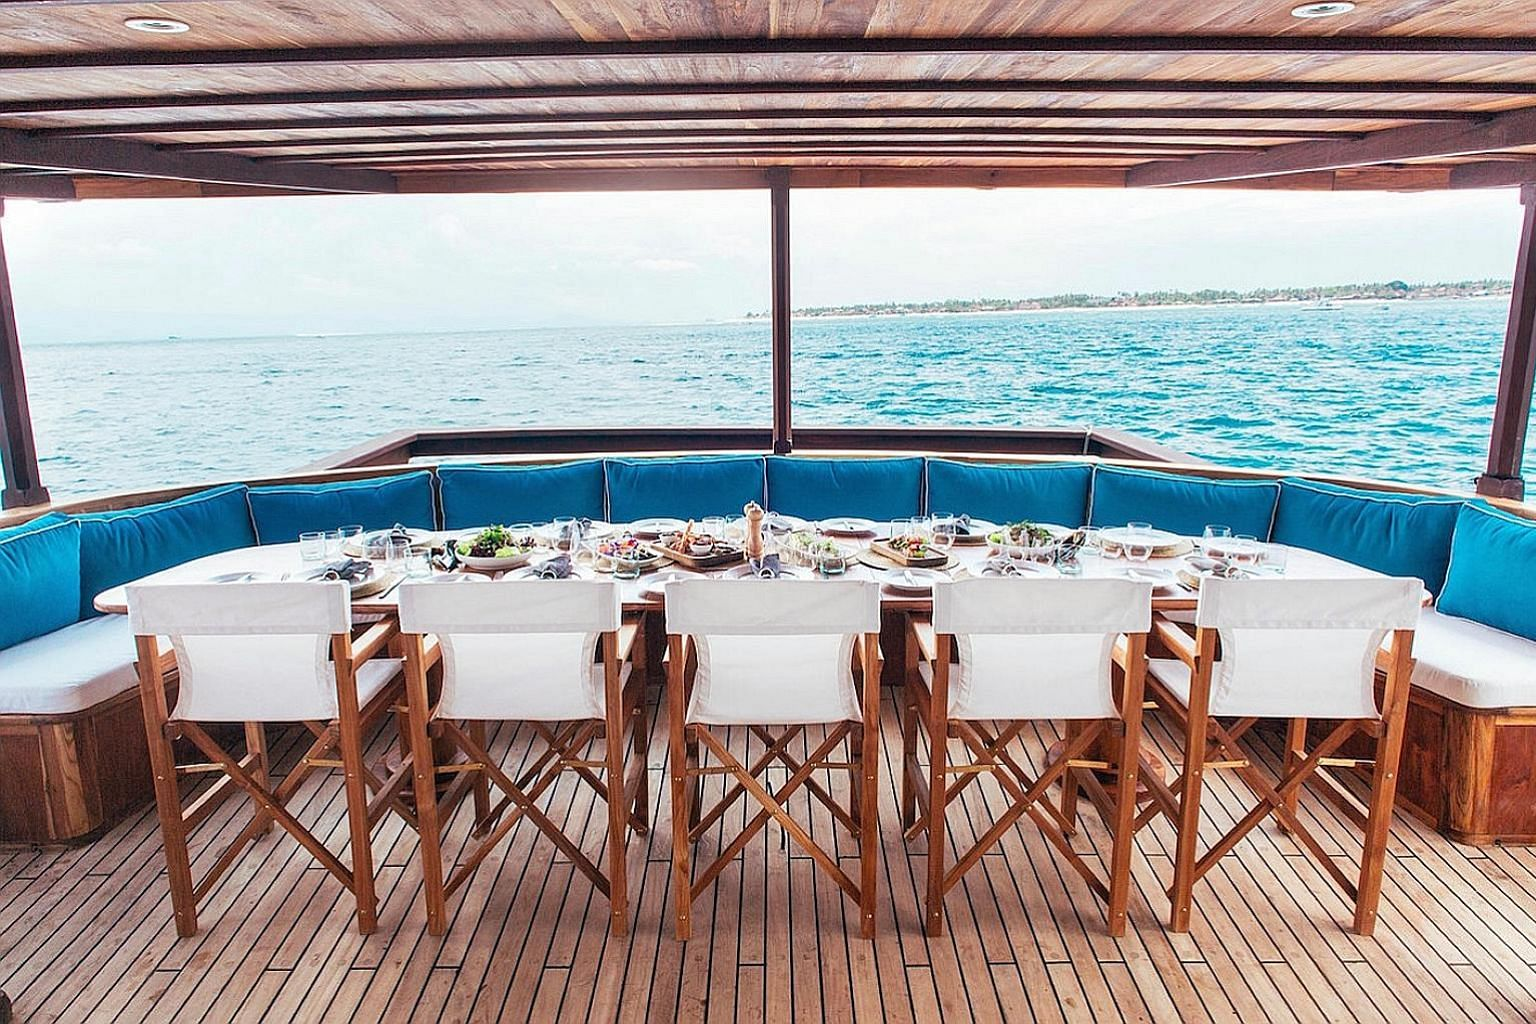 Stay at Ashford Castle, the former residence of the famous Guinness family, on Trafalgar's 10-day Iconic Ireland tour starting on April 23. Dine al fresco aboard Rascal, a traditional phinisi superyacht based in Indonesia available for private charte